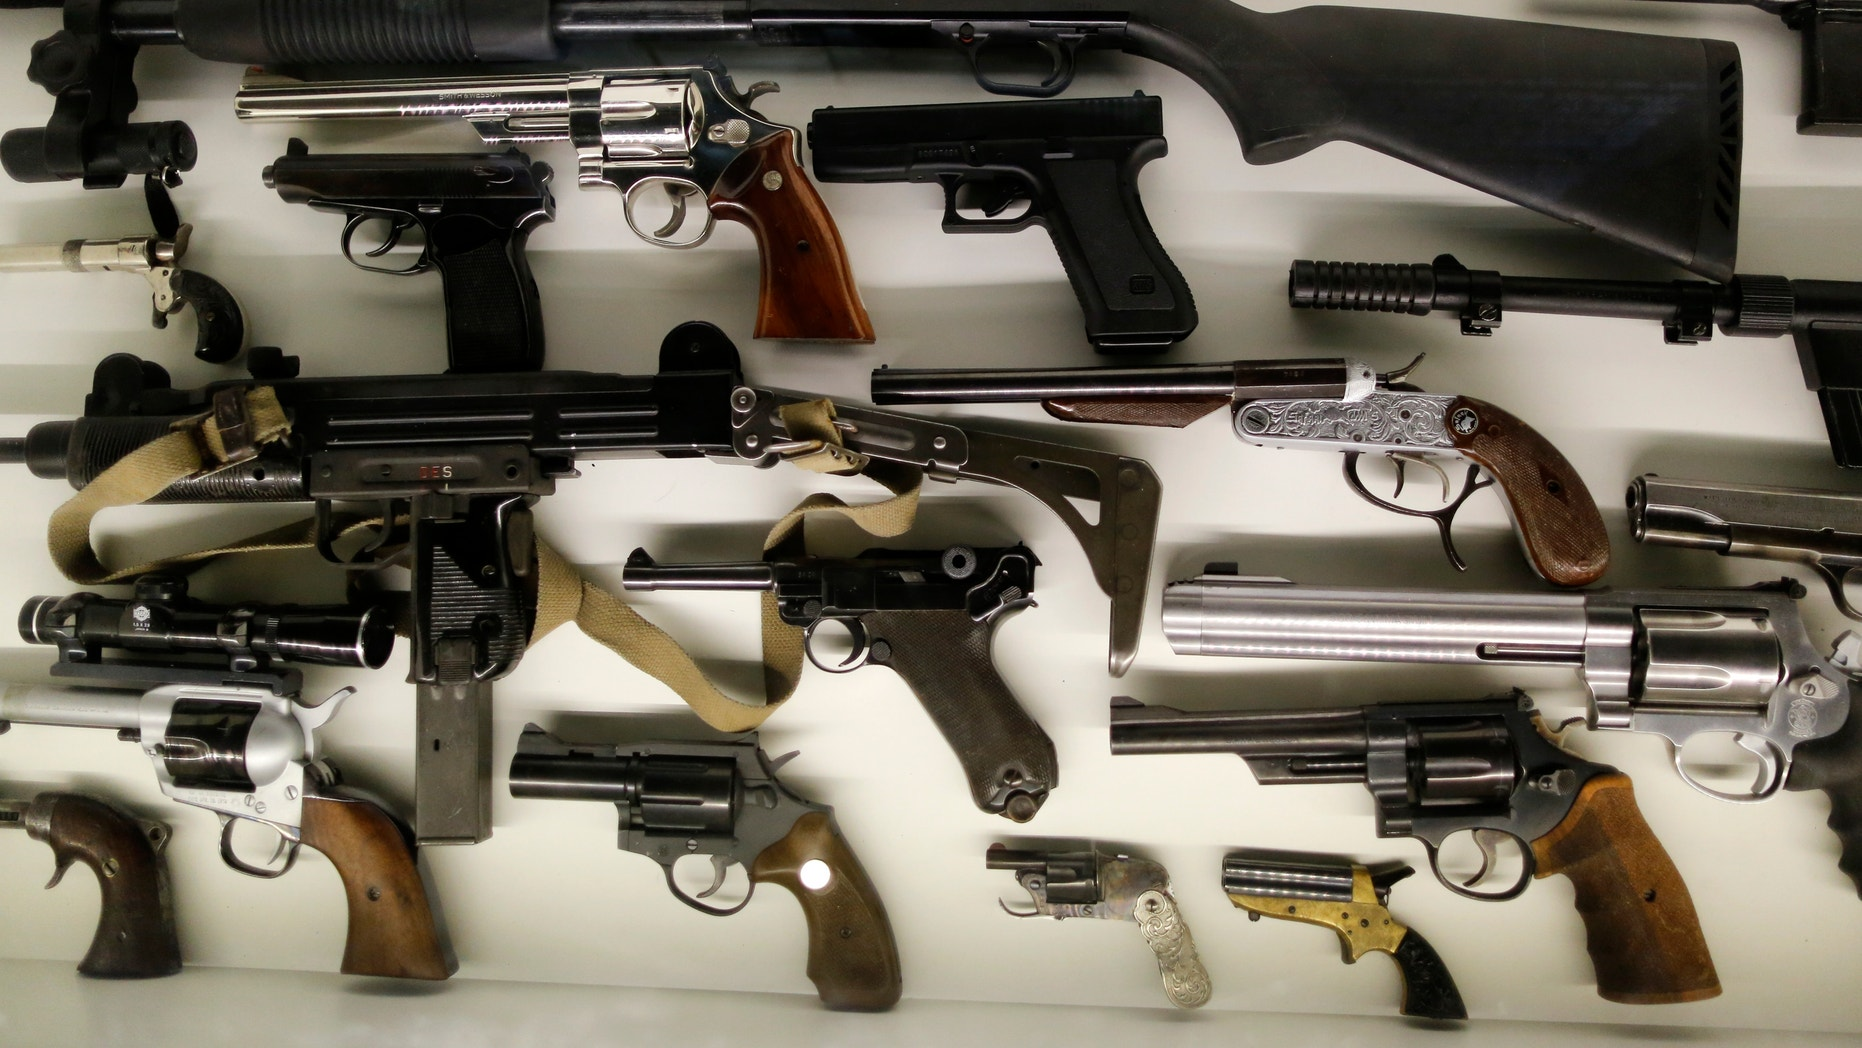 Different kinds of arms are seen on display at the 'Top Secret' Spy Museum in Oberhausen, July 10, 2013.